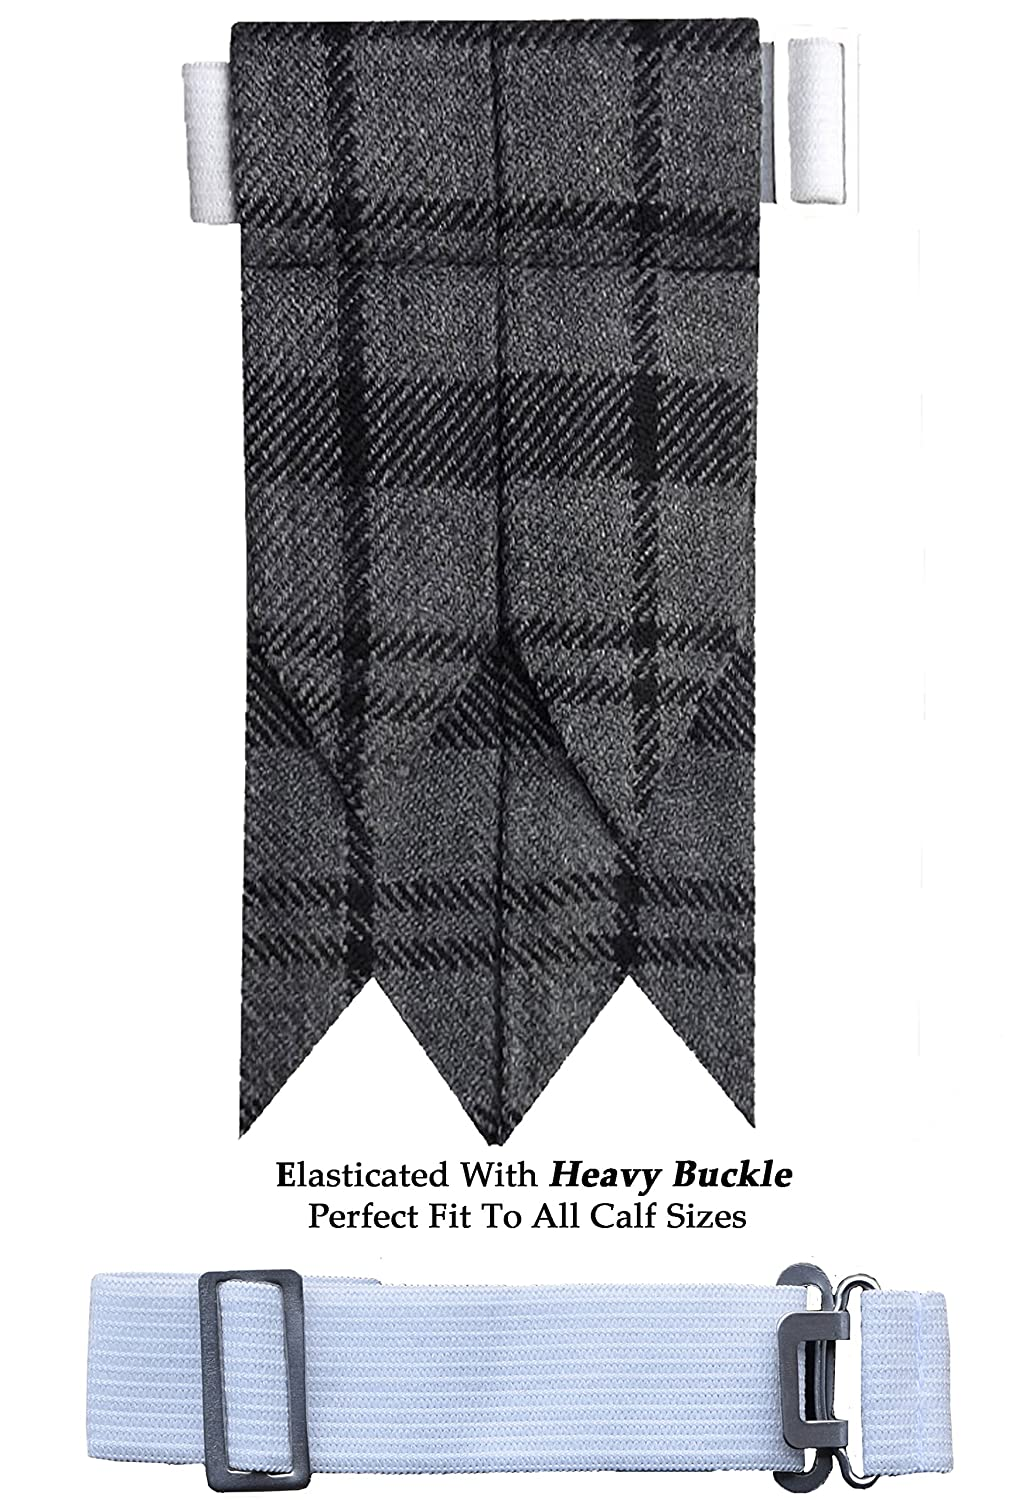 AAR Products Kilt Flashes Heavy Buckle Elastic Adjusters Fit, We Have More Then Tartans Kilt Flashes